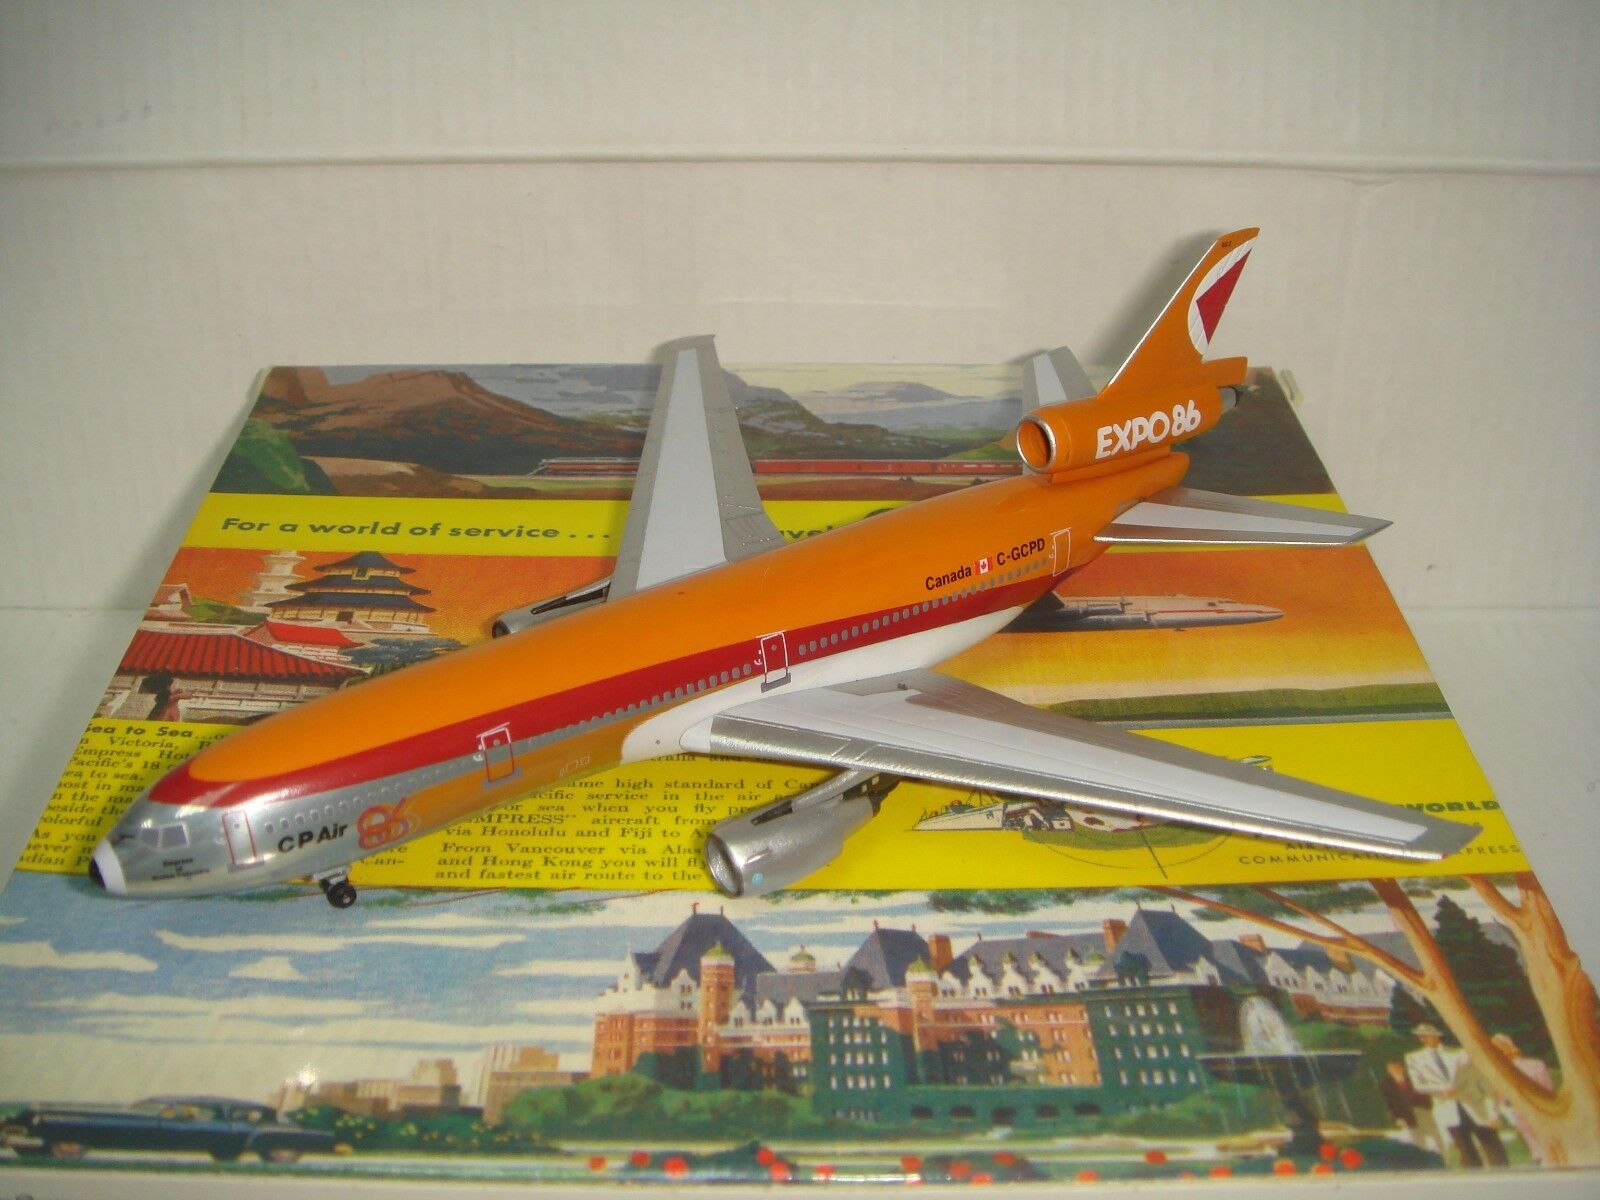 Aeroclassics CP Air DC-10-30  1980s Coloree-Expo 86  1  400